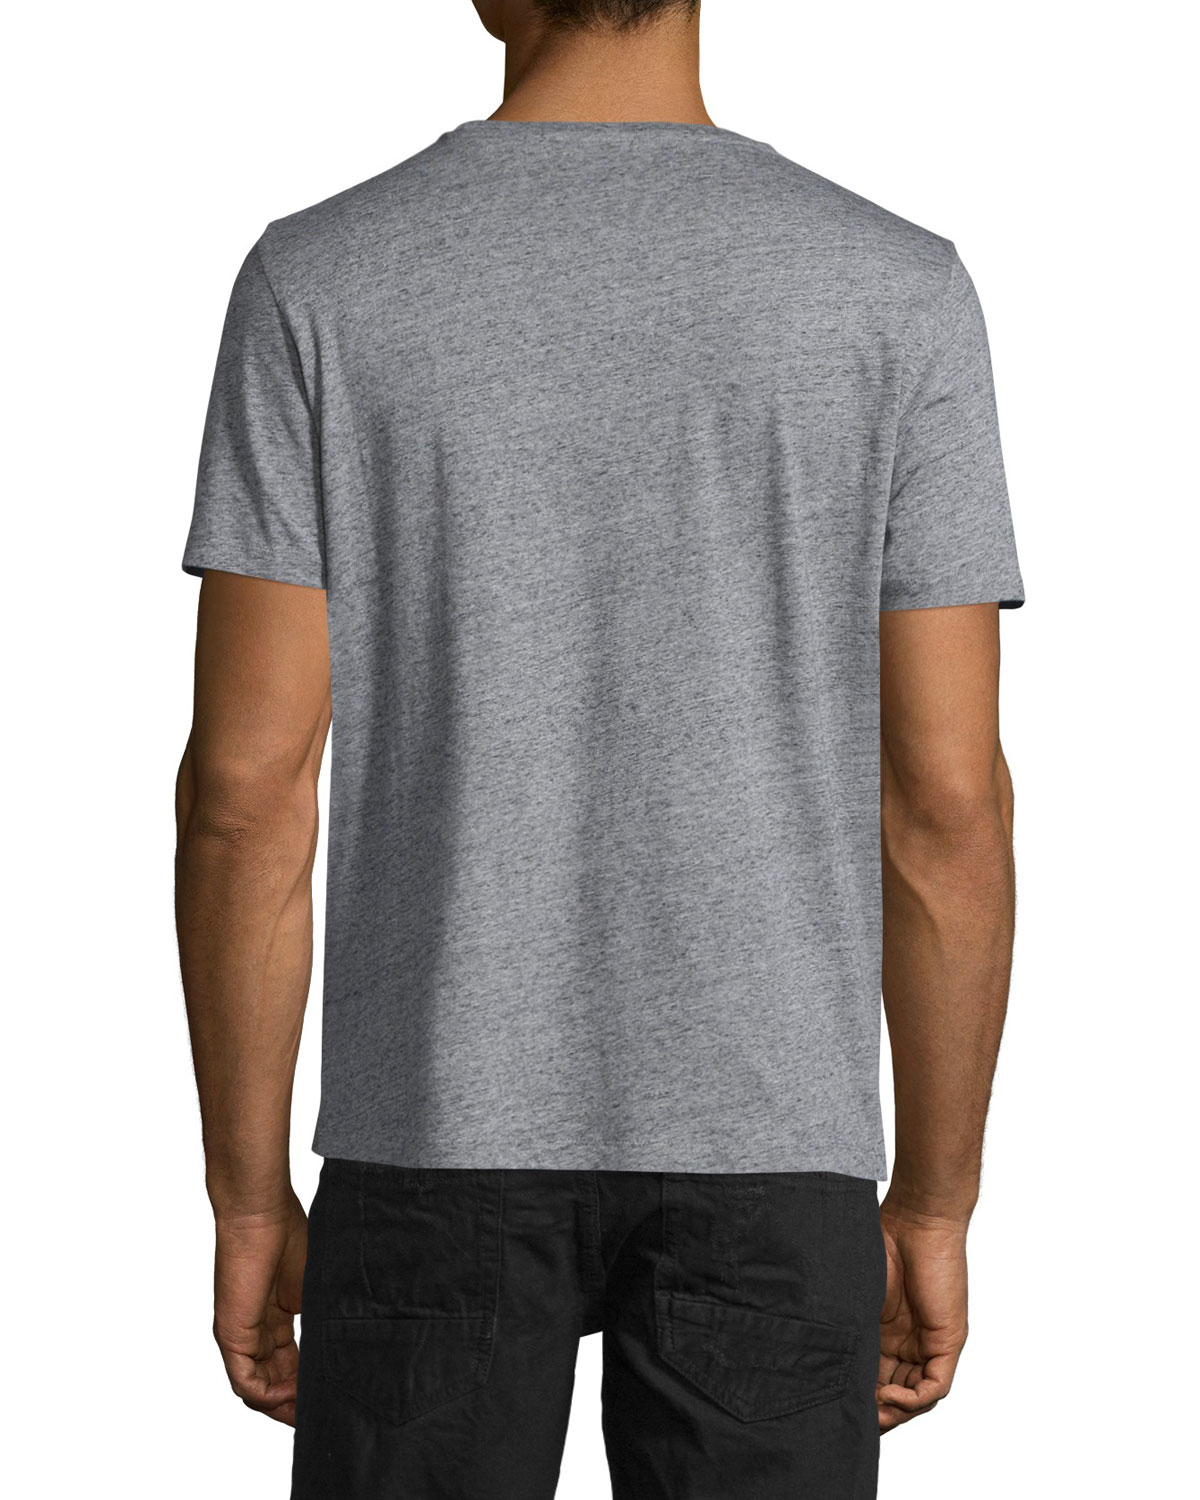 Hollister Oberbekleidung Returns Exchanges Hollister Pullover Hollister Hoodies Hollister Jeans: PRPS Cotton Nyc Logo Short-sleeve Graphic T-shirt In Gray